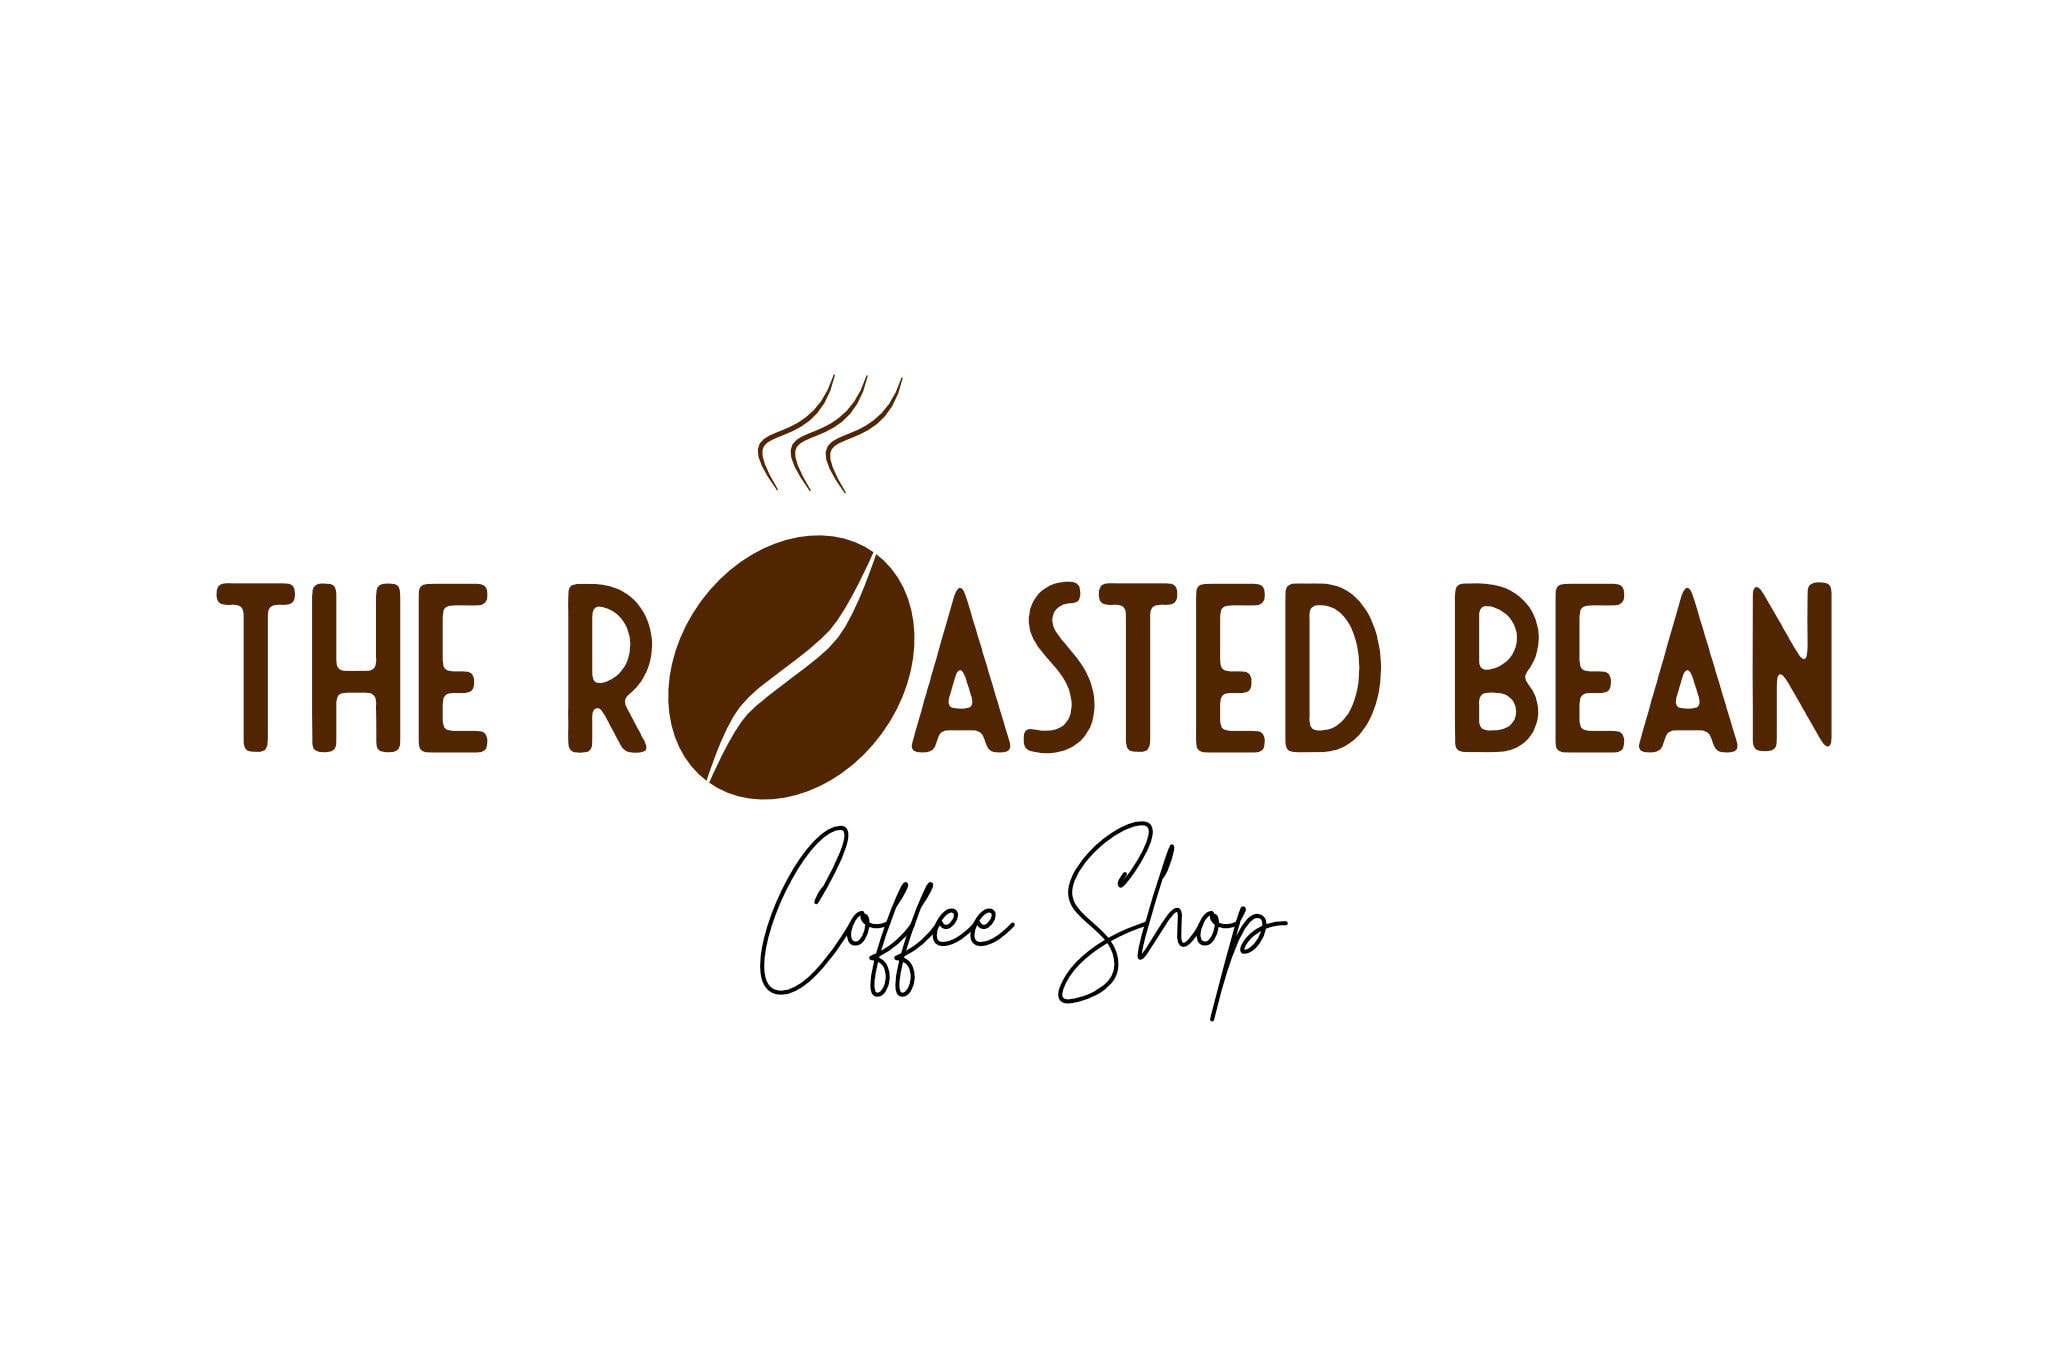 The Roasted Bean Coffee Shop